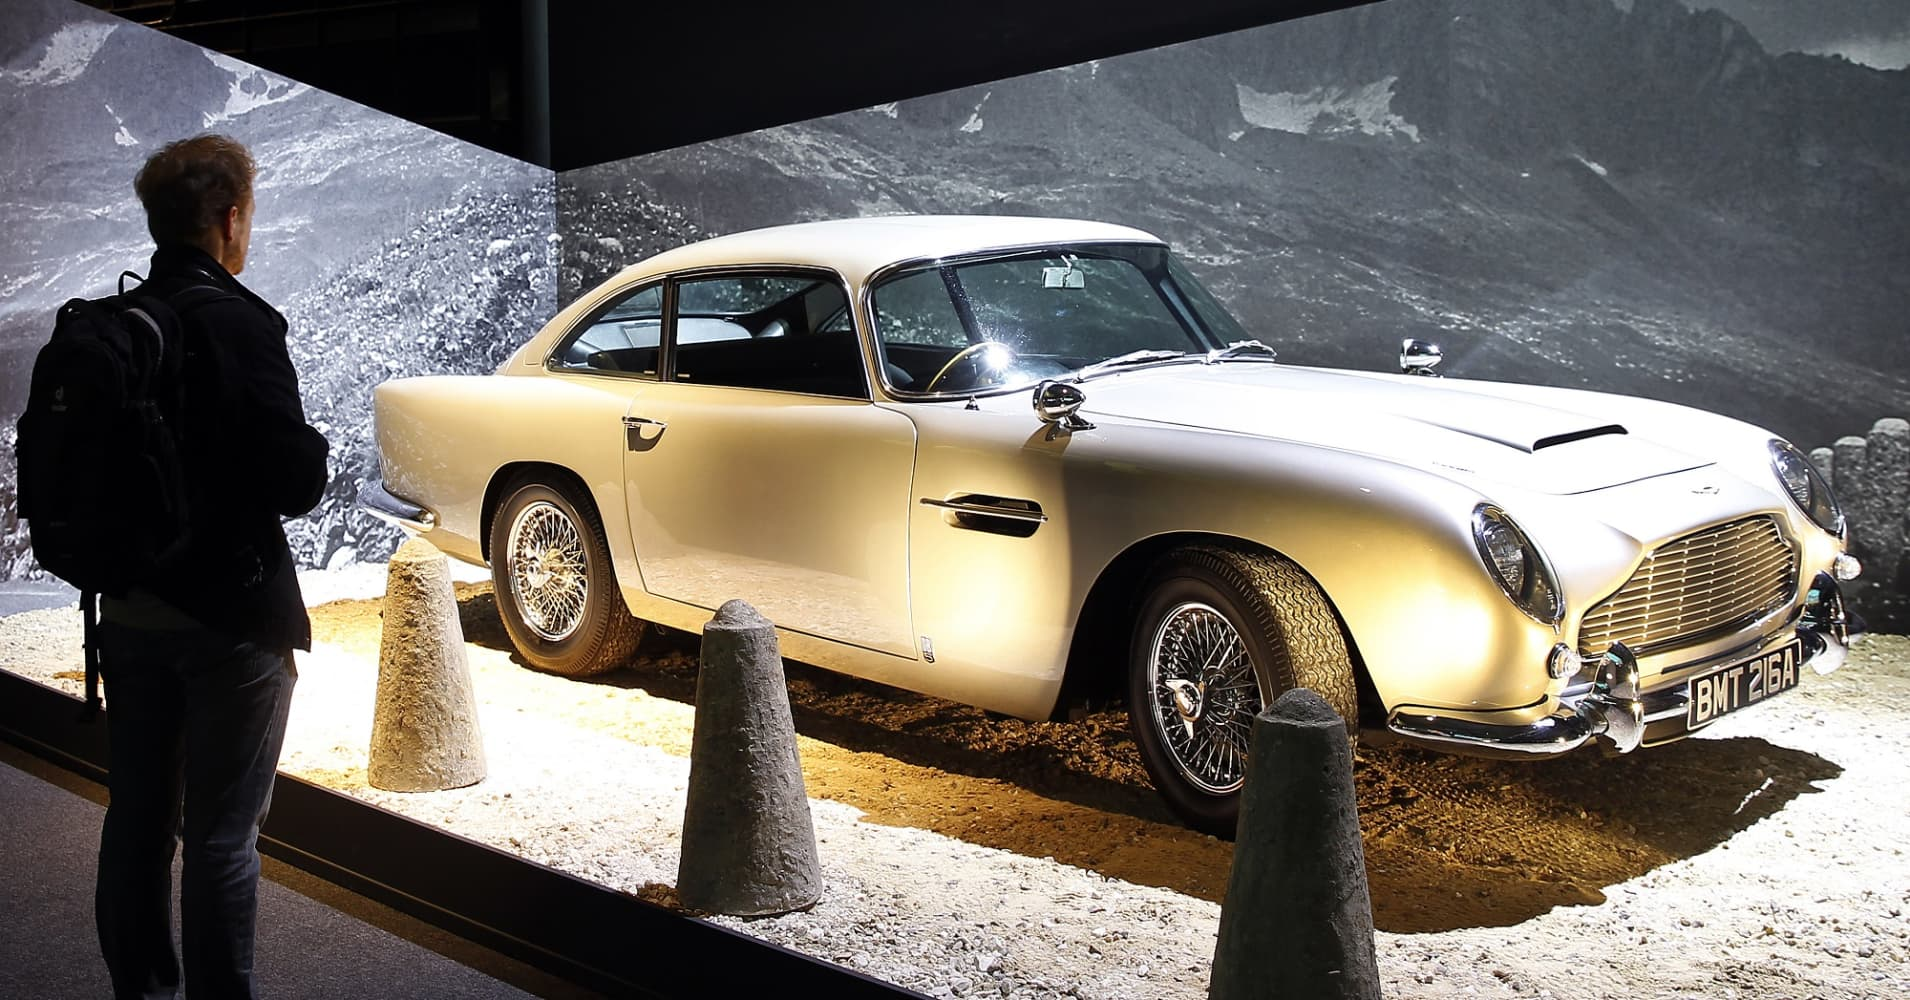 photos: aston martin recreating db5 car from james bond films